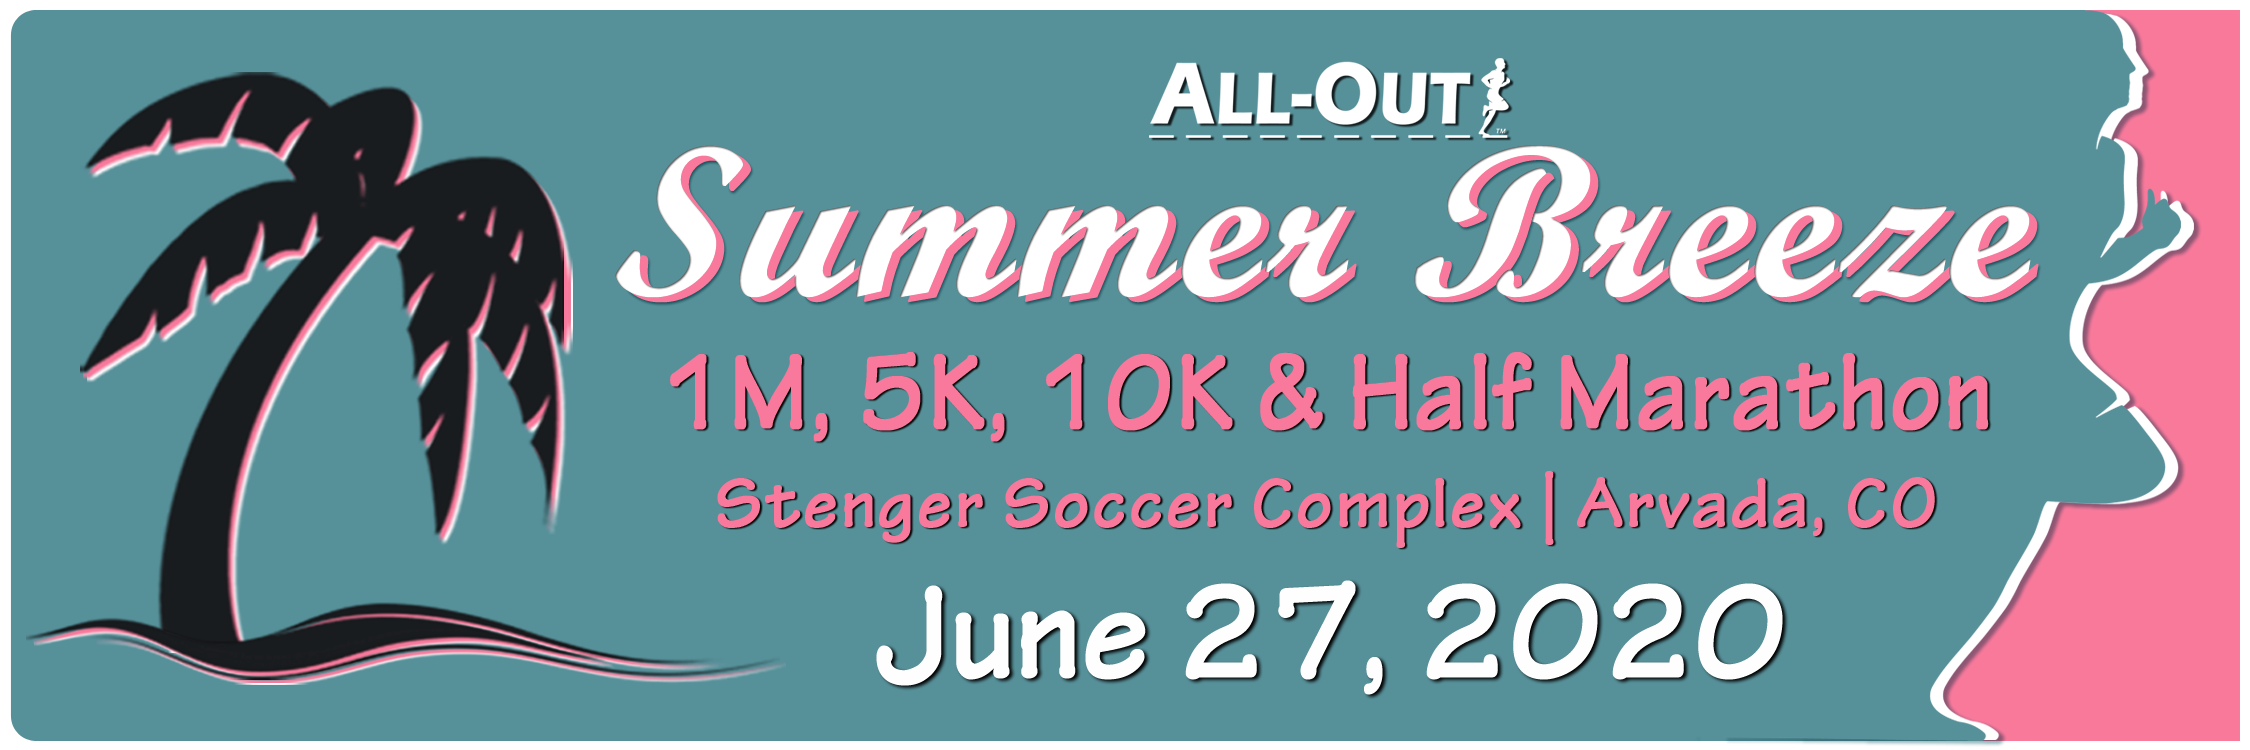 75f8a6299232 From the heart of the West Metro area and the Stenger Soccer Complex, All-Out  brings you our 8th annual Summer Breeze! Along with its Endless Series ...